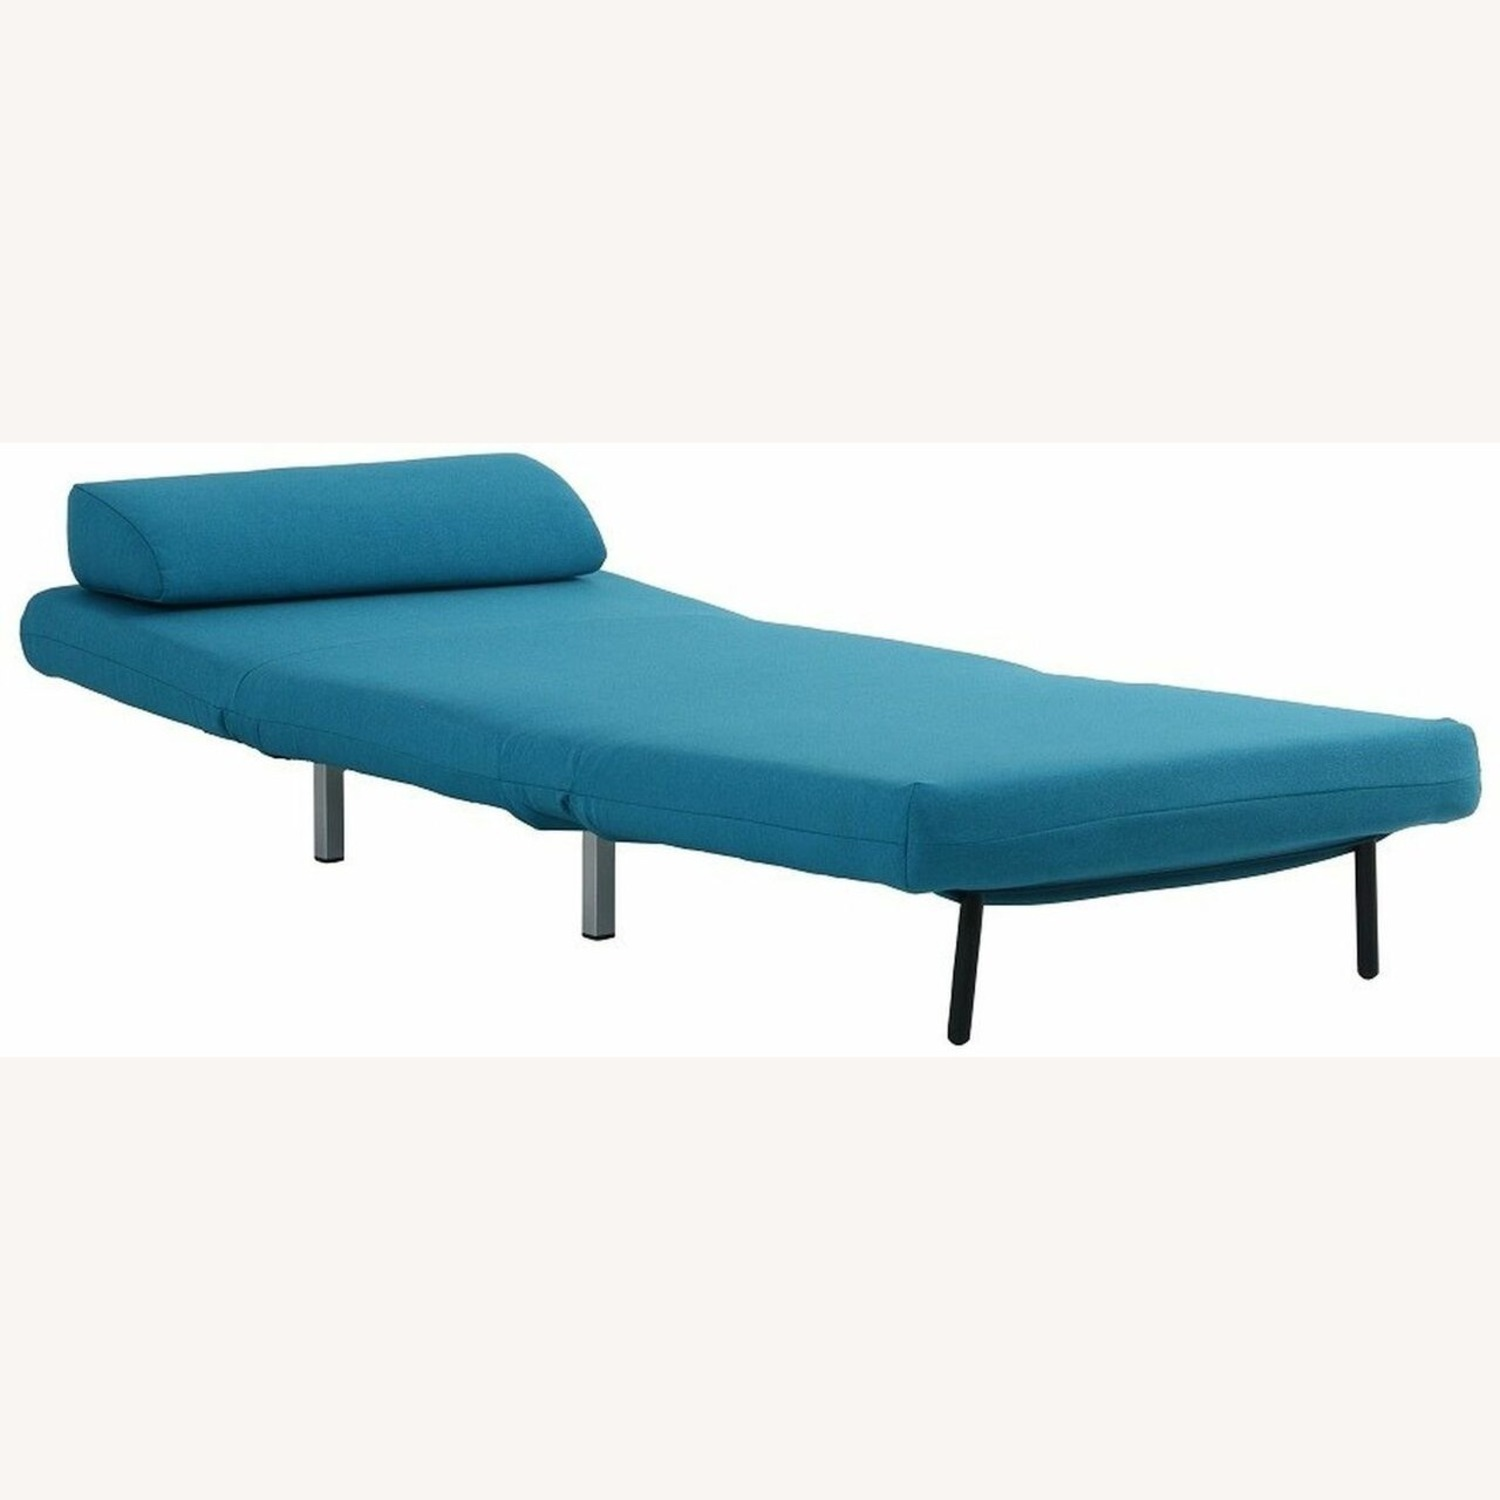 Convertible Sofa Bed In Teal Fabric Upholstery - image-4